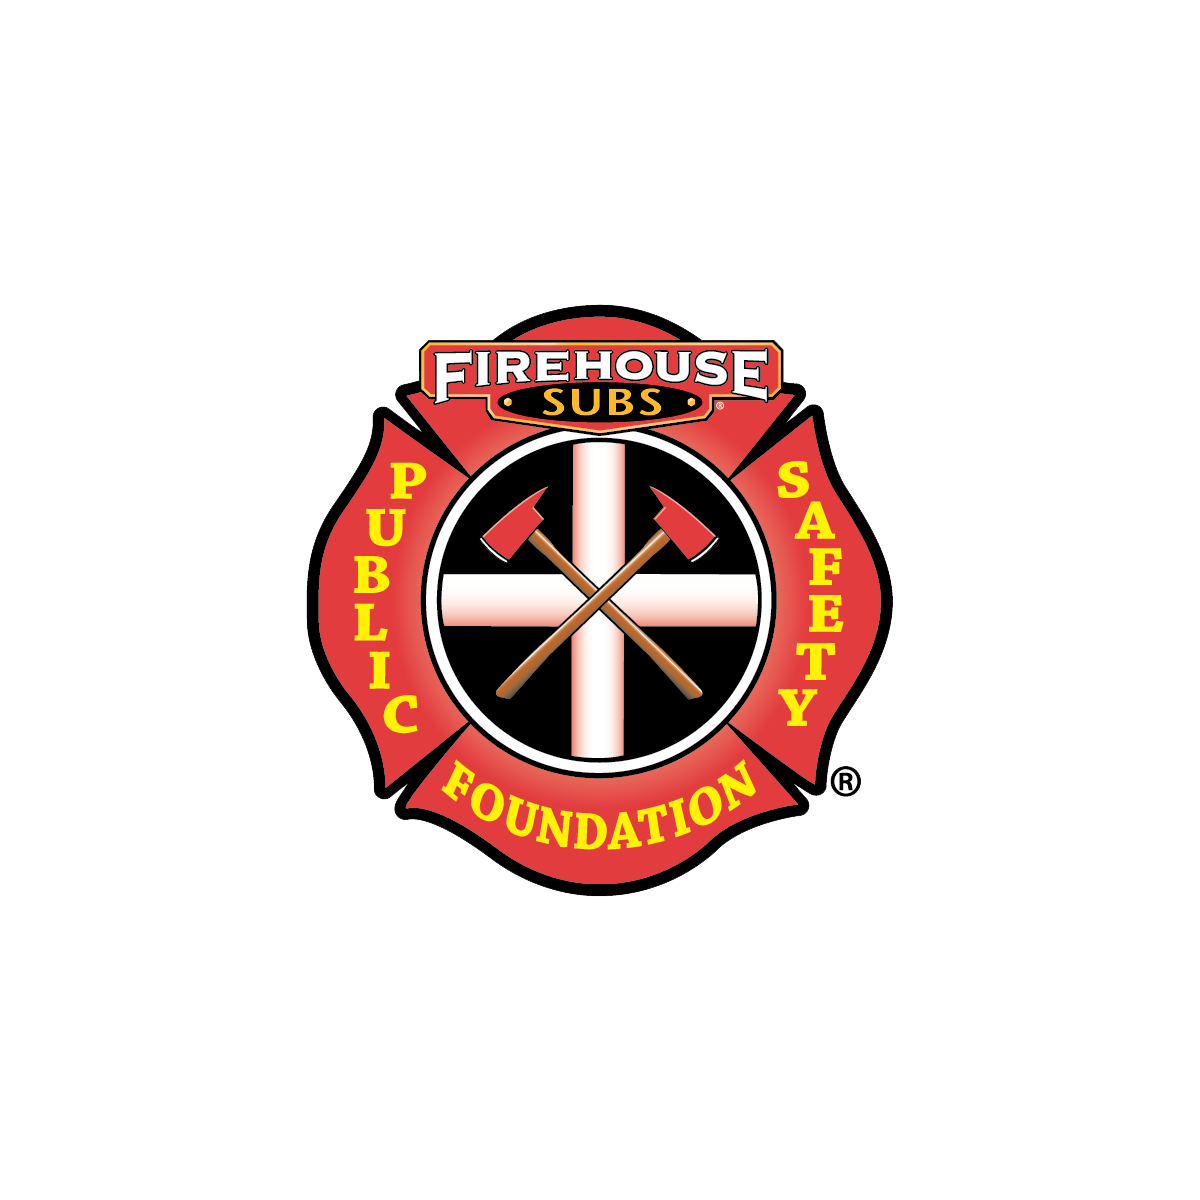 FIREHOUSE SUBS PUBLIC SAFETY FOUNDATION® HOPES TO RAISE $500,000 FOR HOMETOWN HEROES IN OCTOBER